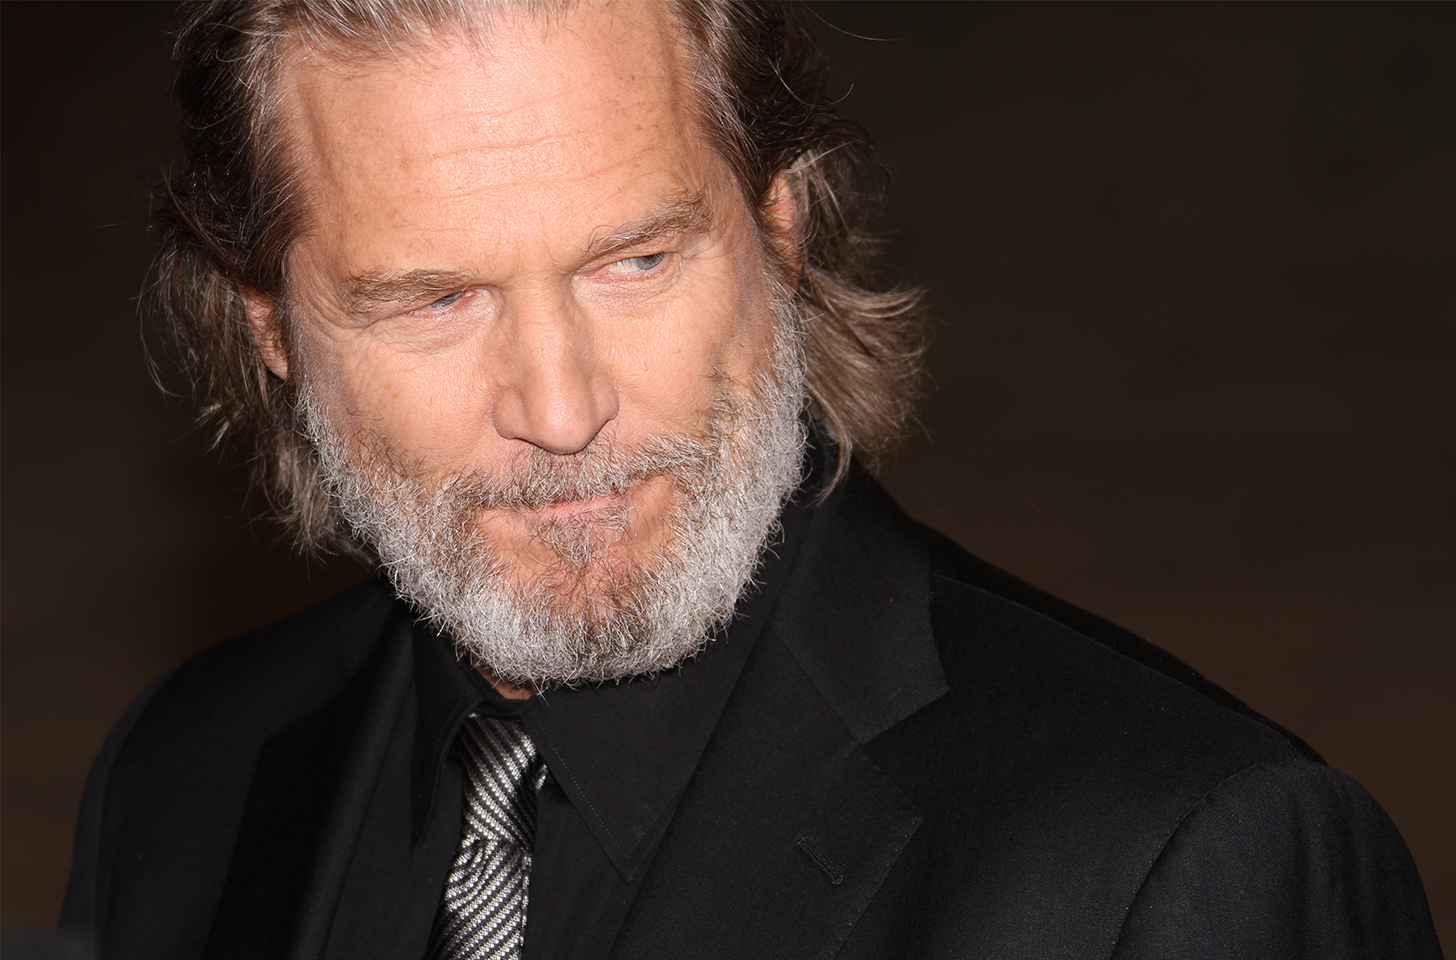 Jeff Bridges Recent Health News More Significant Than You May Realize